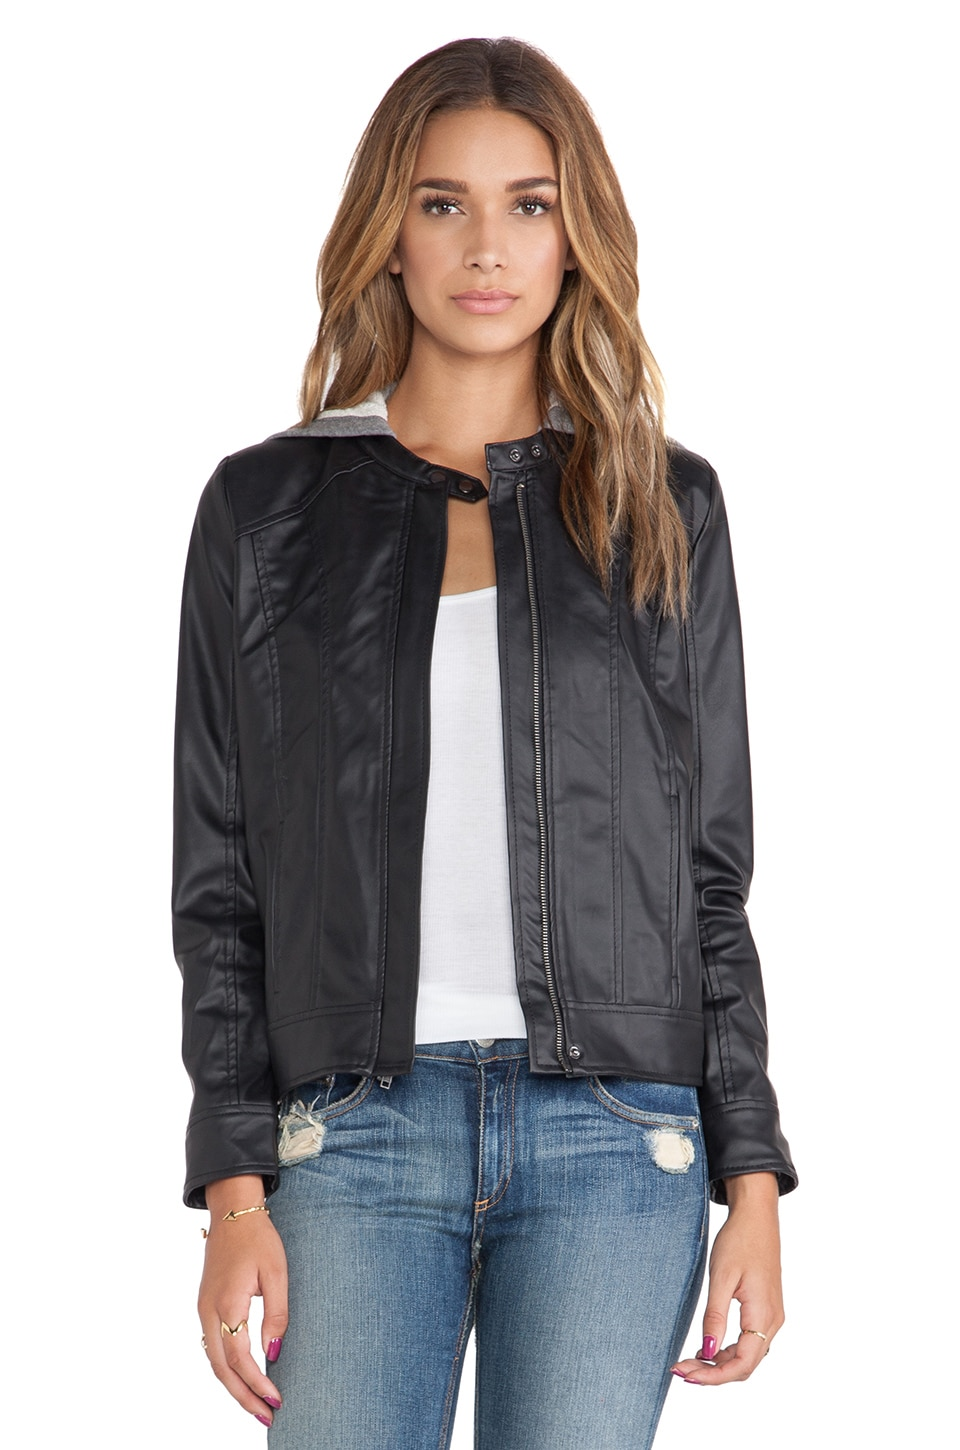 BB Dakota Vincent Jacket in Black